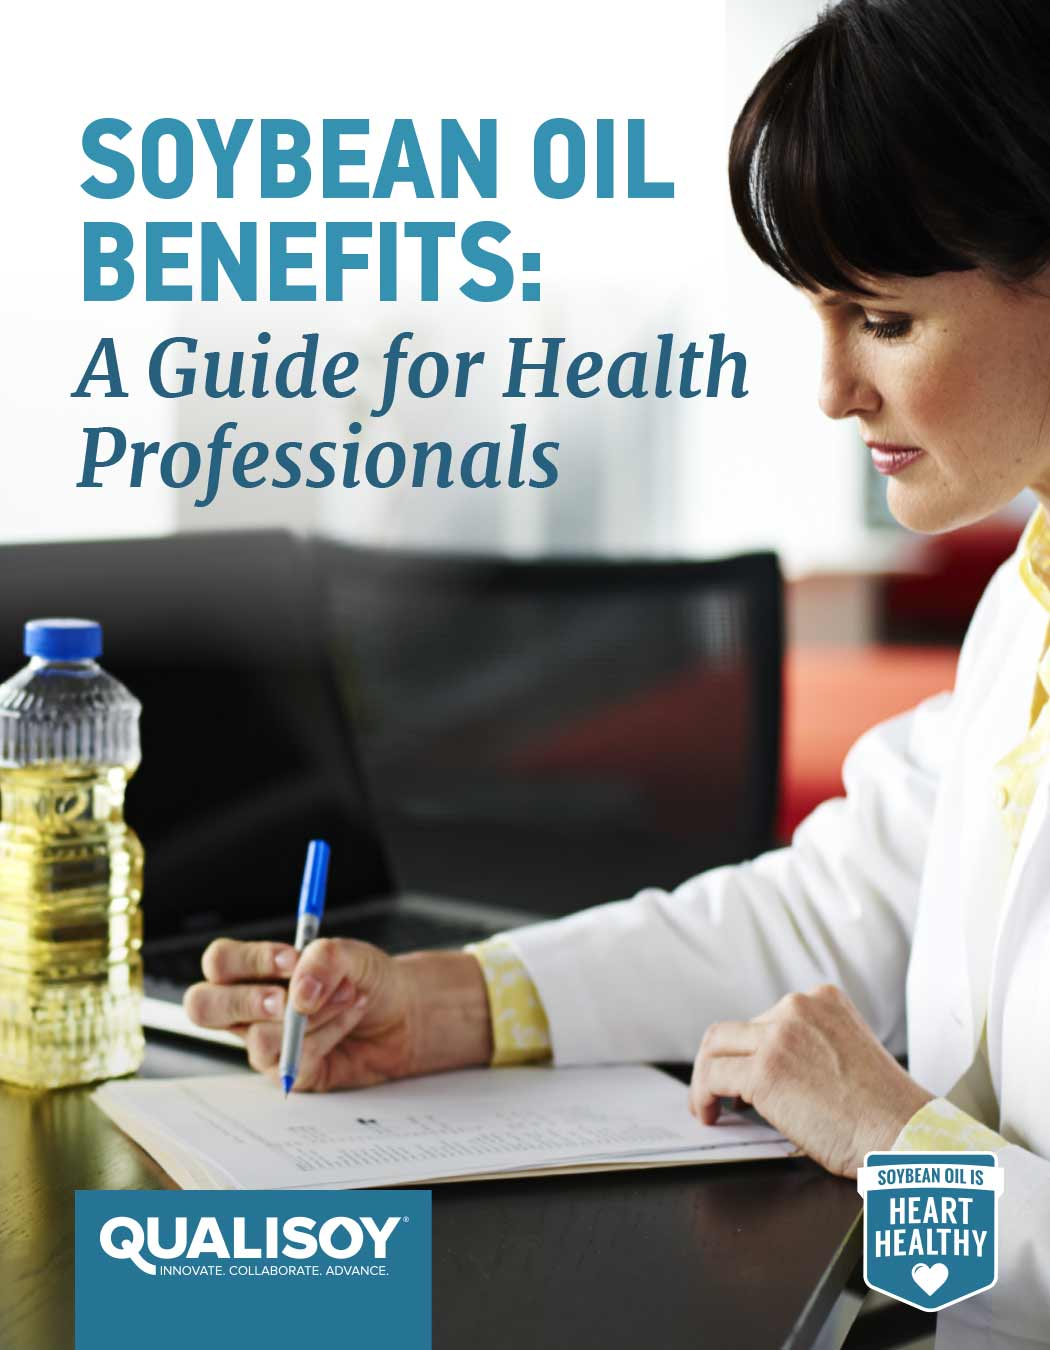 Soybean Oil Benefits: A Guide for Health Professionals